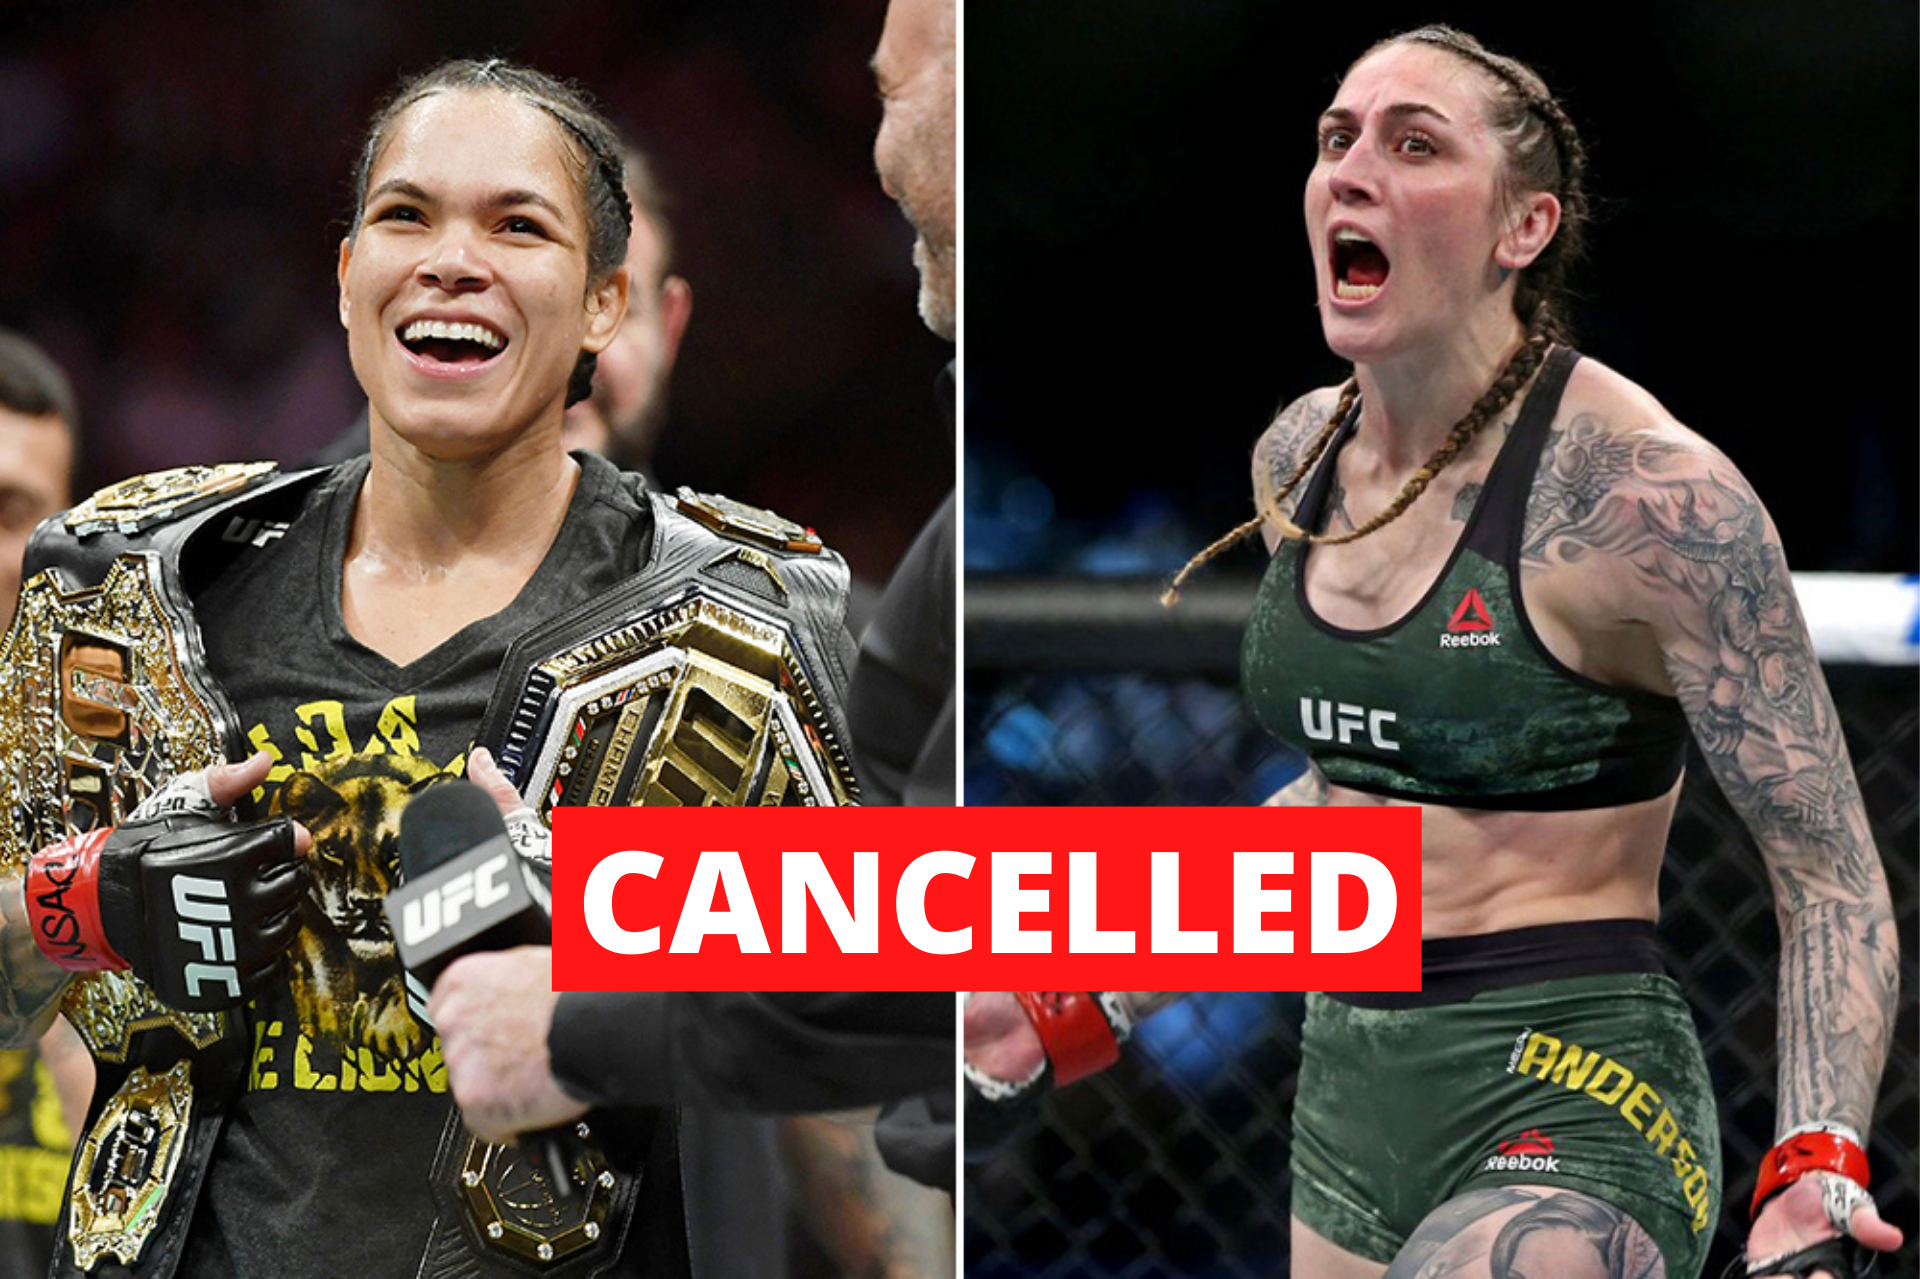 Amanda Nunes pulls out of her UFC 256 fight against Megan Anderson - Nunes